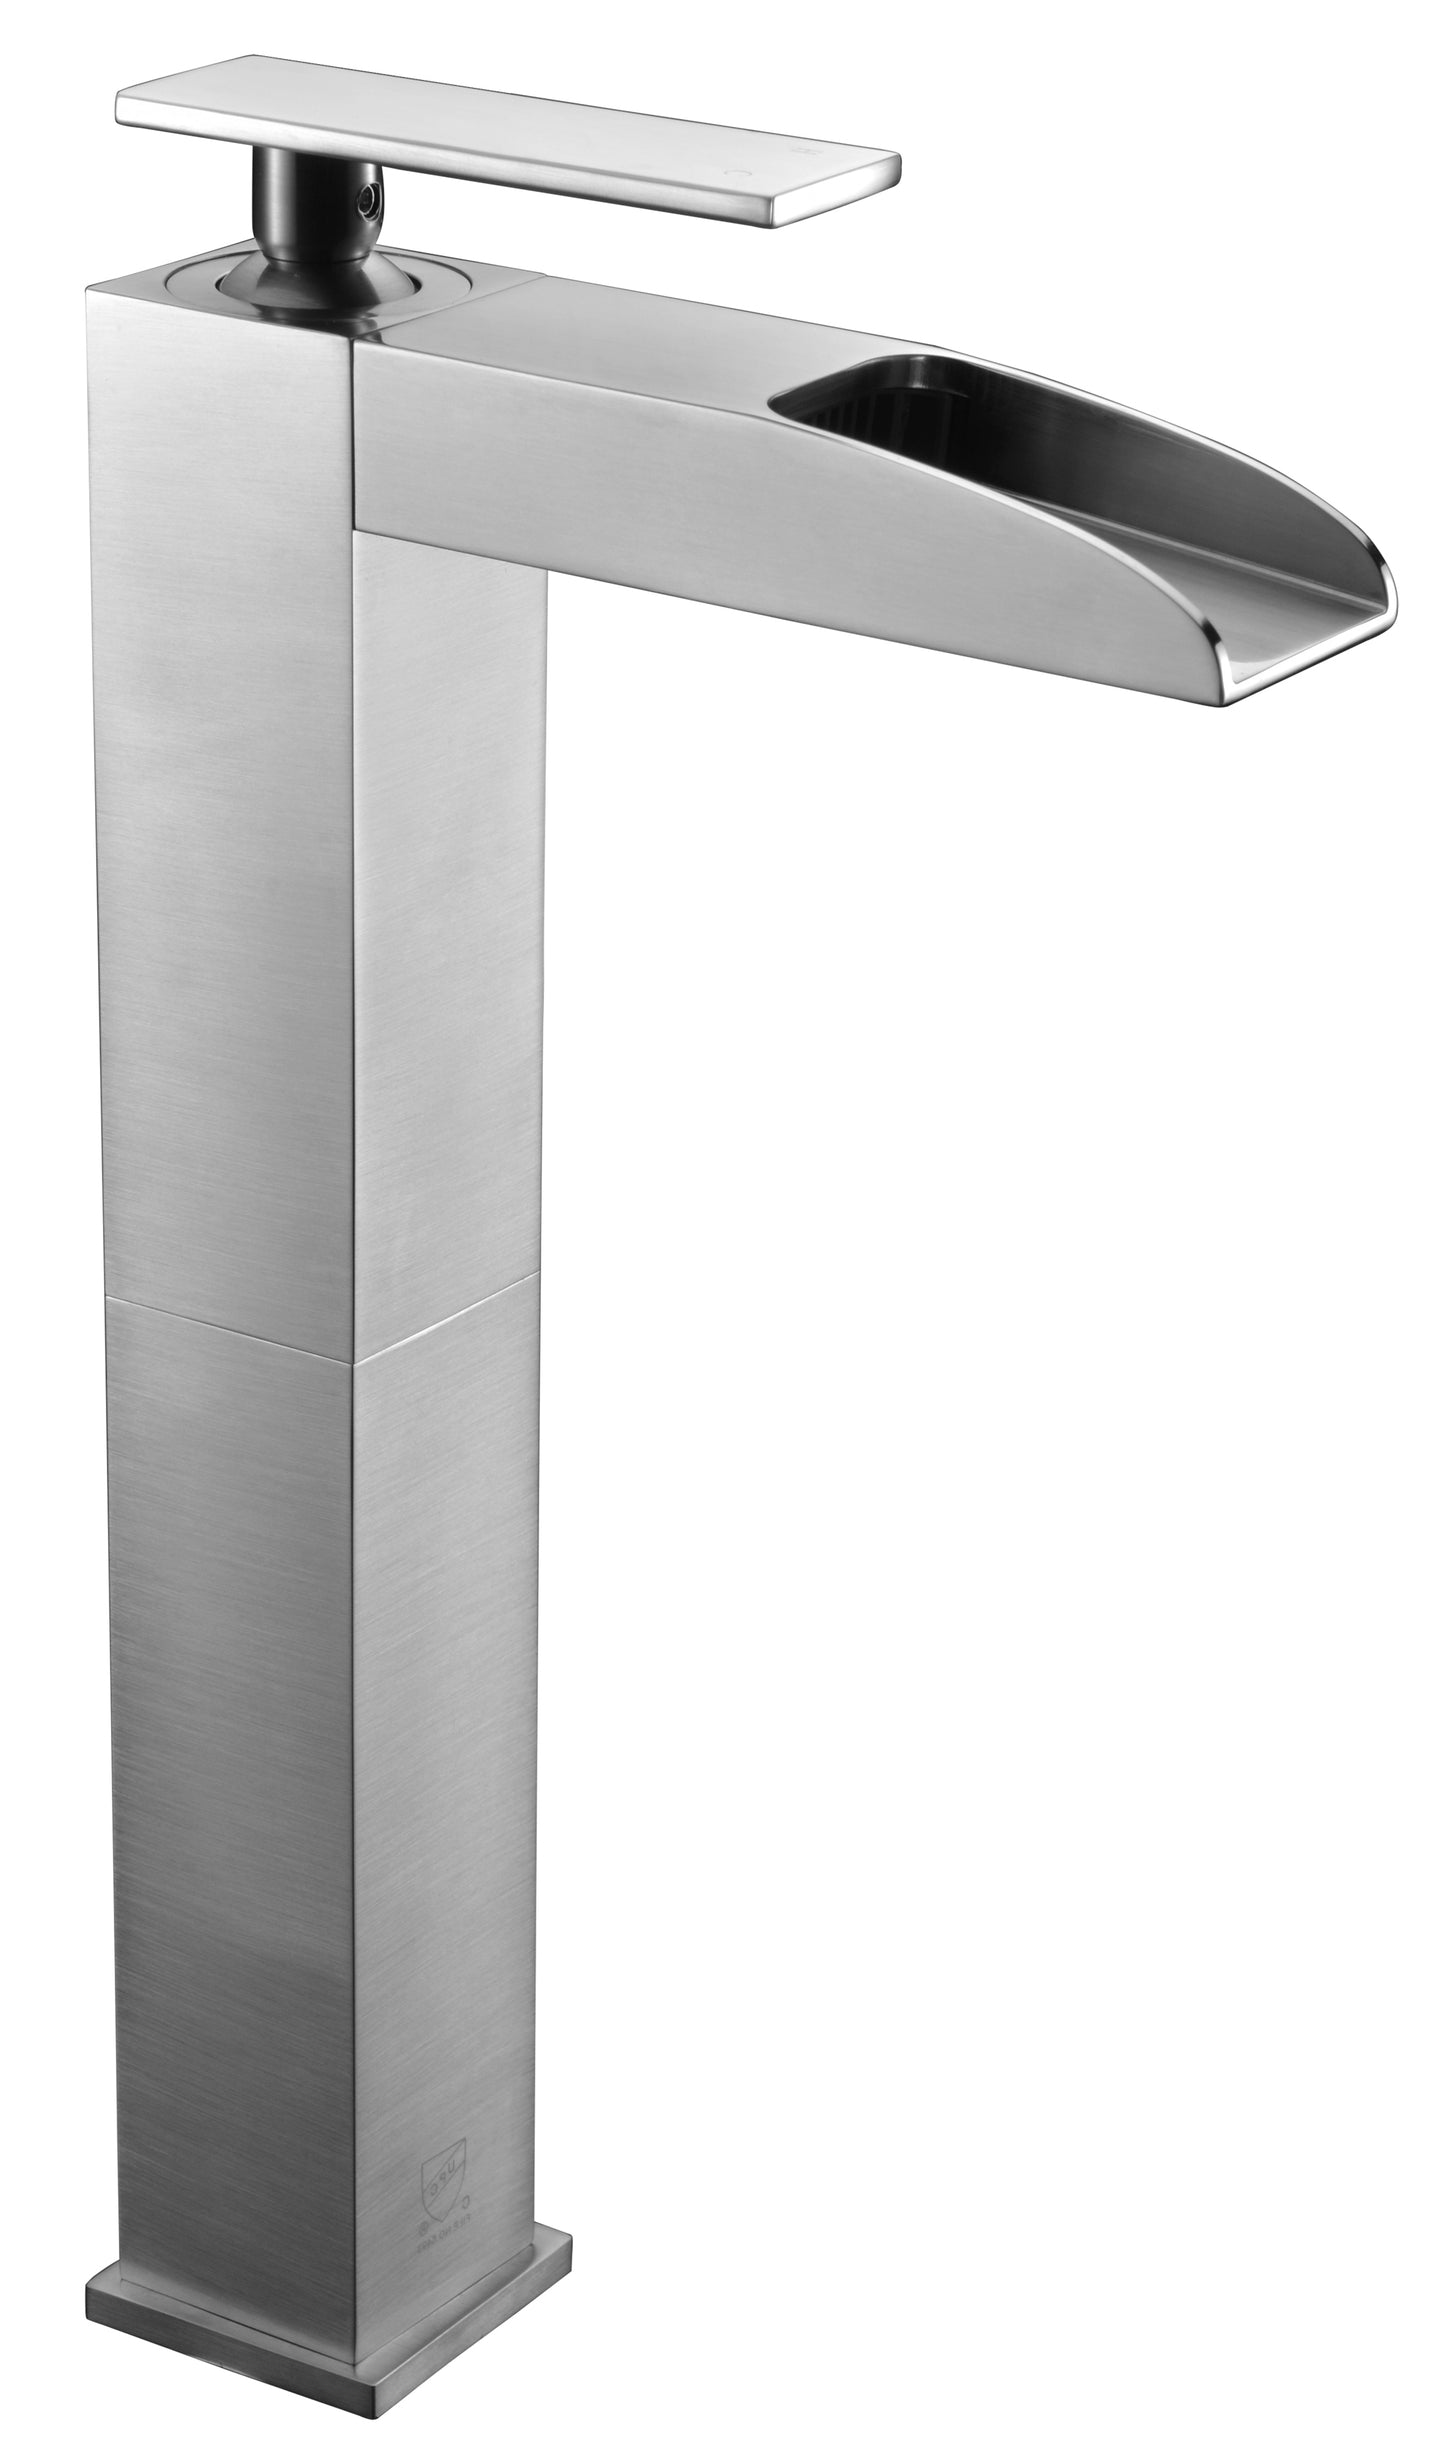 Brushed Nickel Single Hole Tall Waterfall Bathroom Faucet